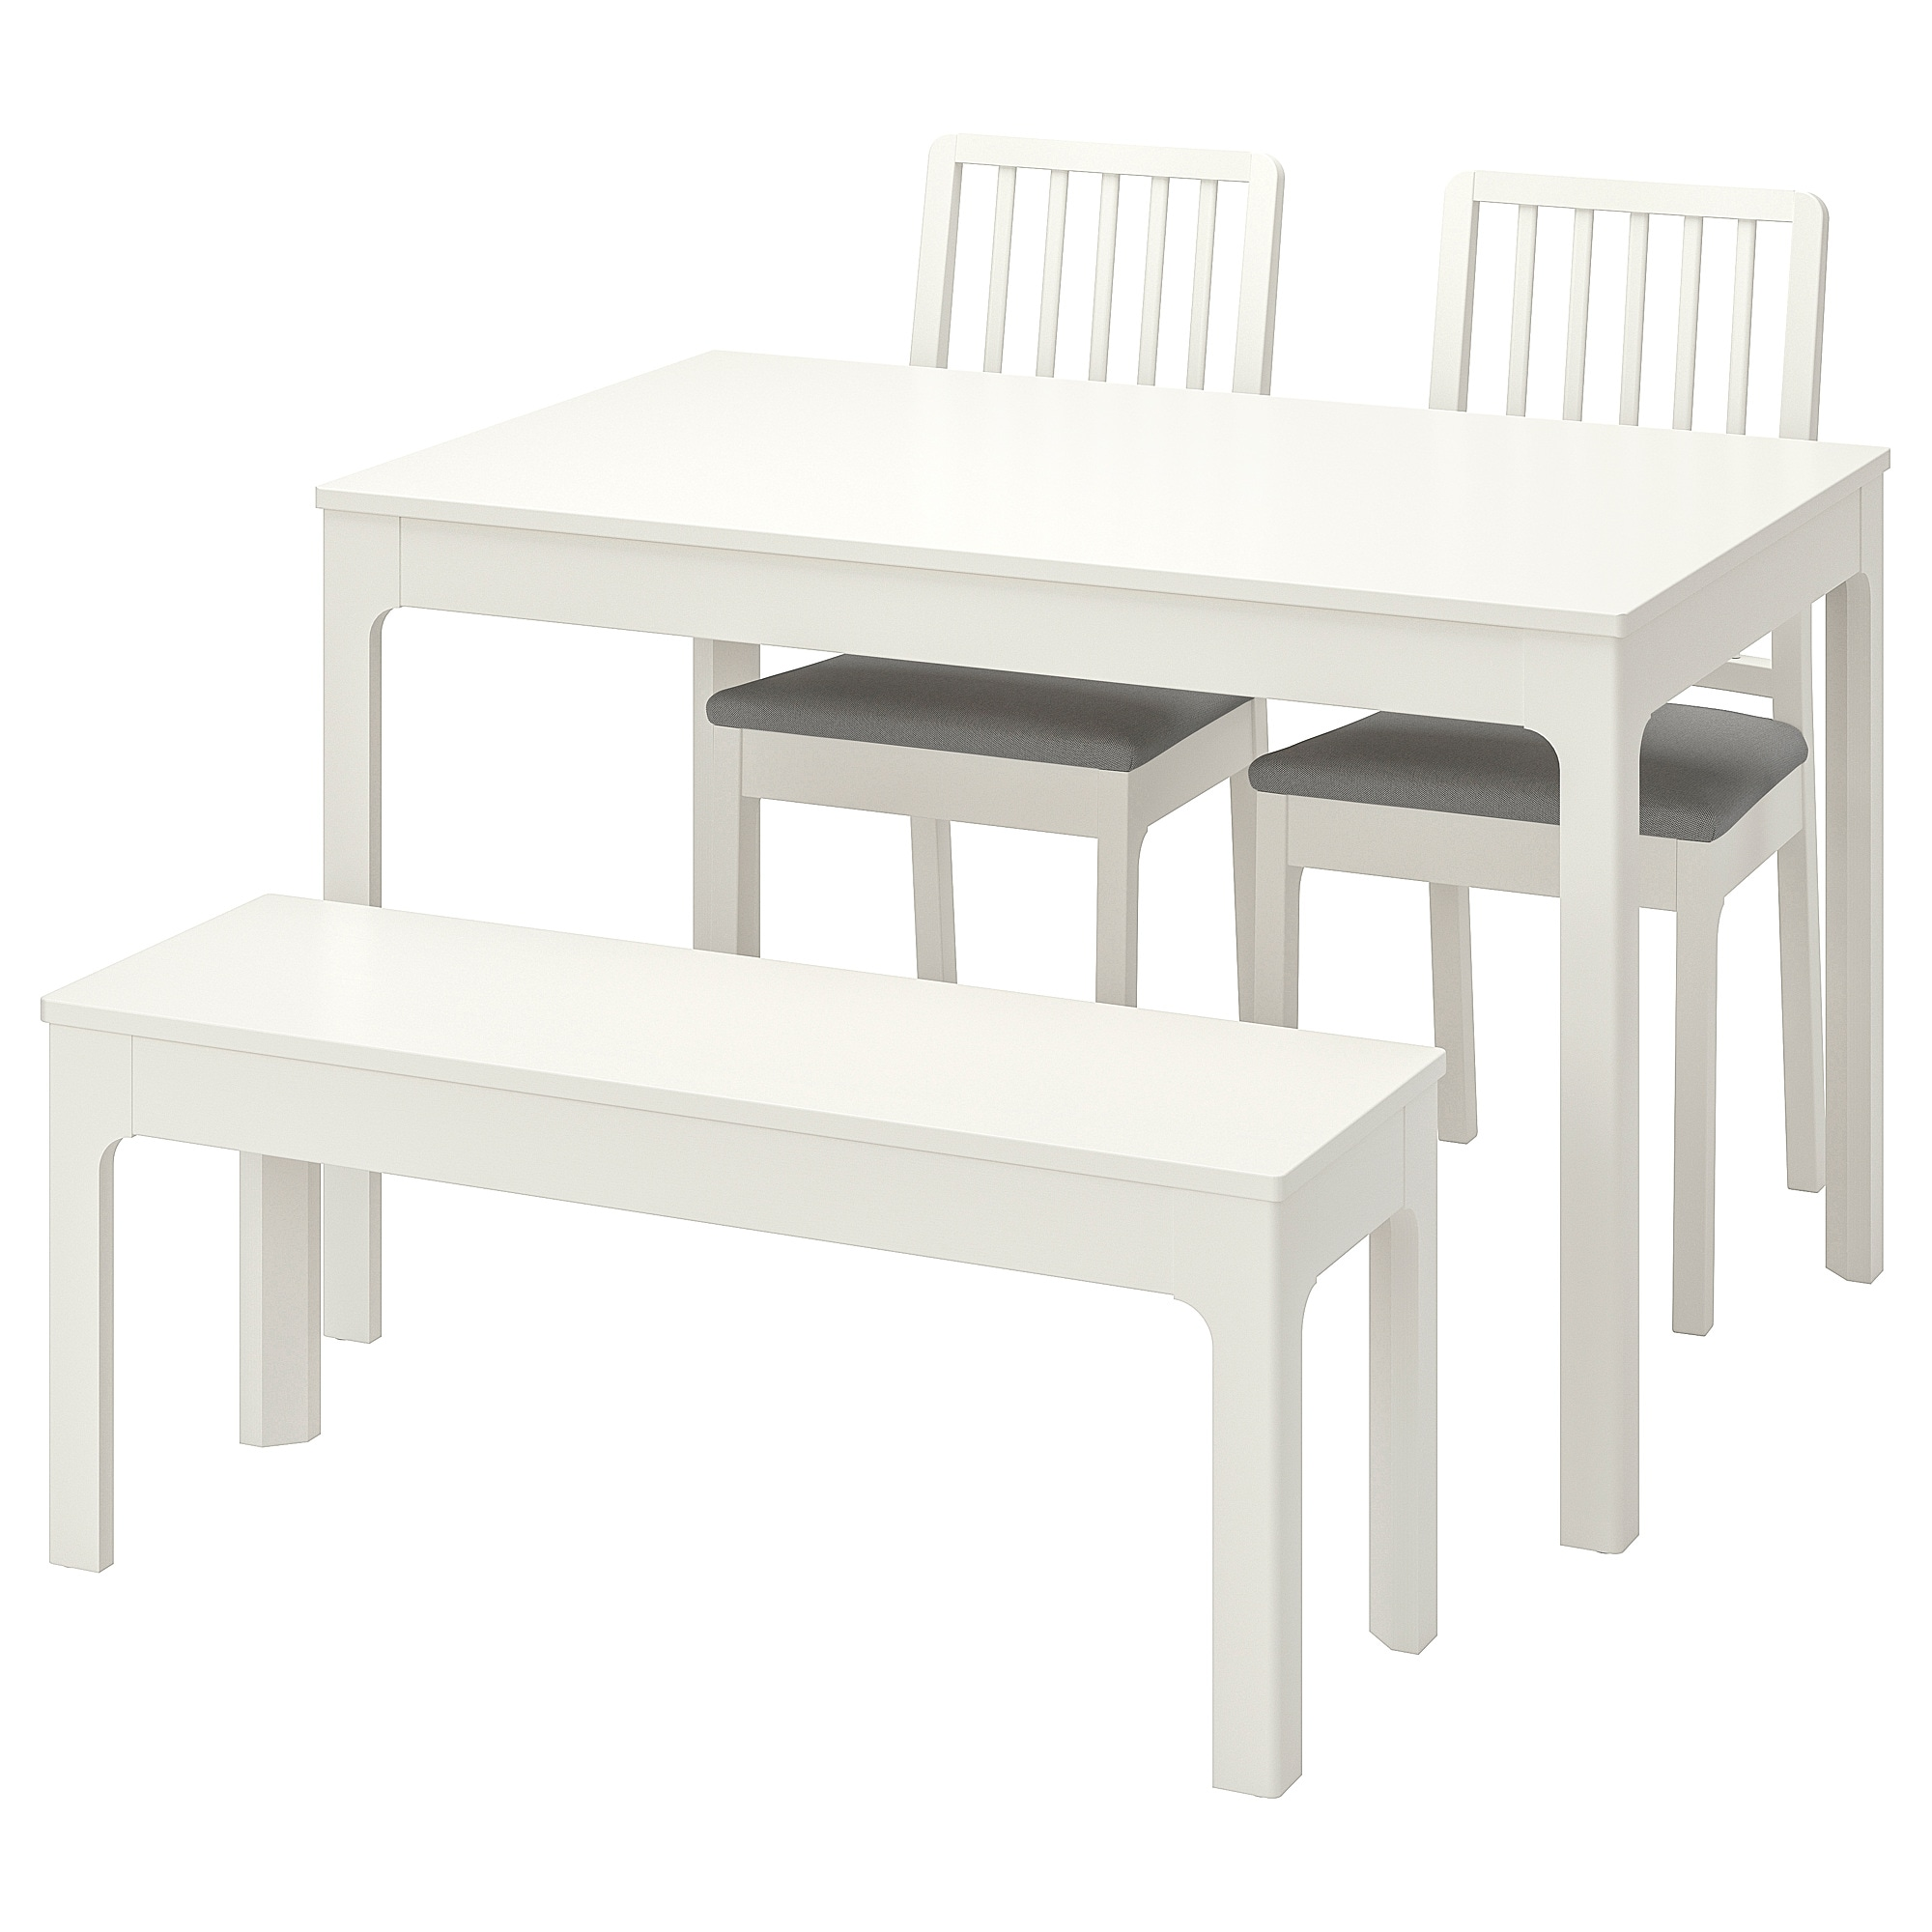 Swell Table With 2 Chairs And Bench Ekedalen Ekedalen White Ramna Light Grey Interior Design Ideas Gentotryabchikinfo